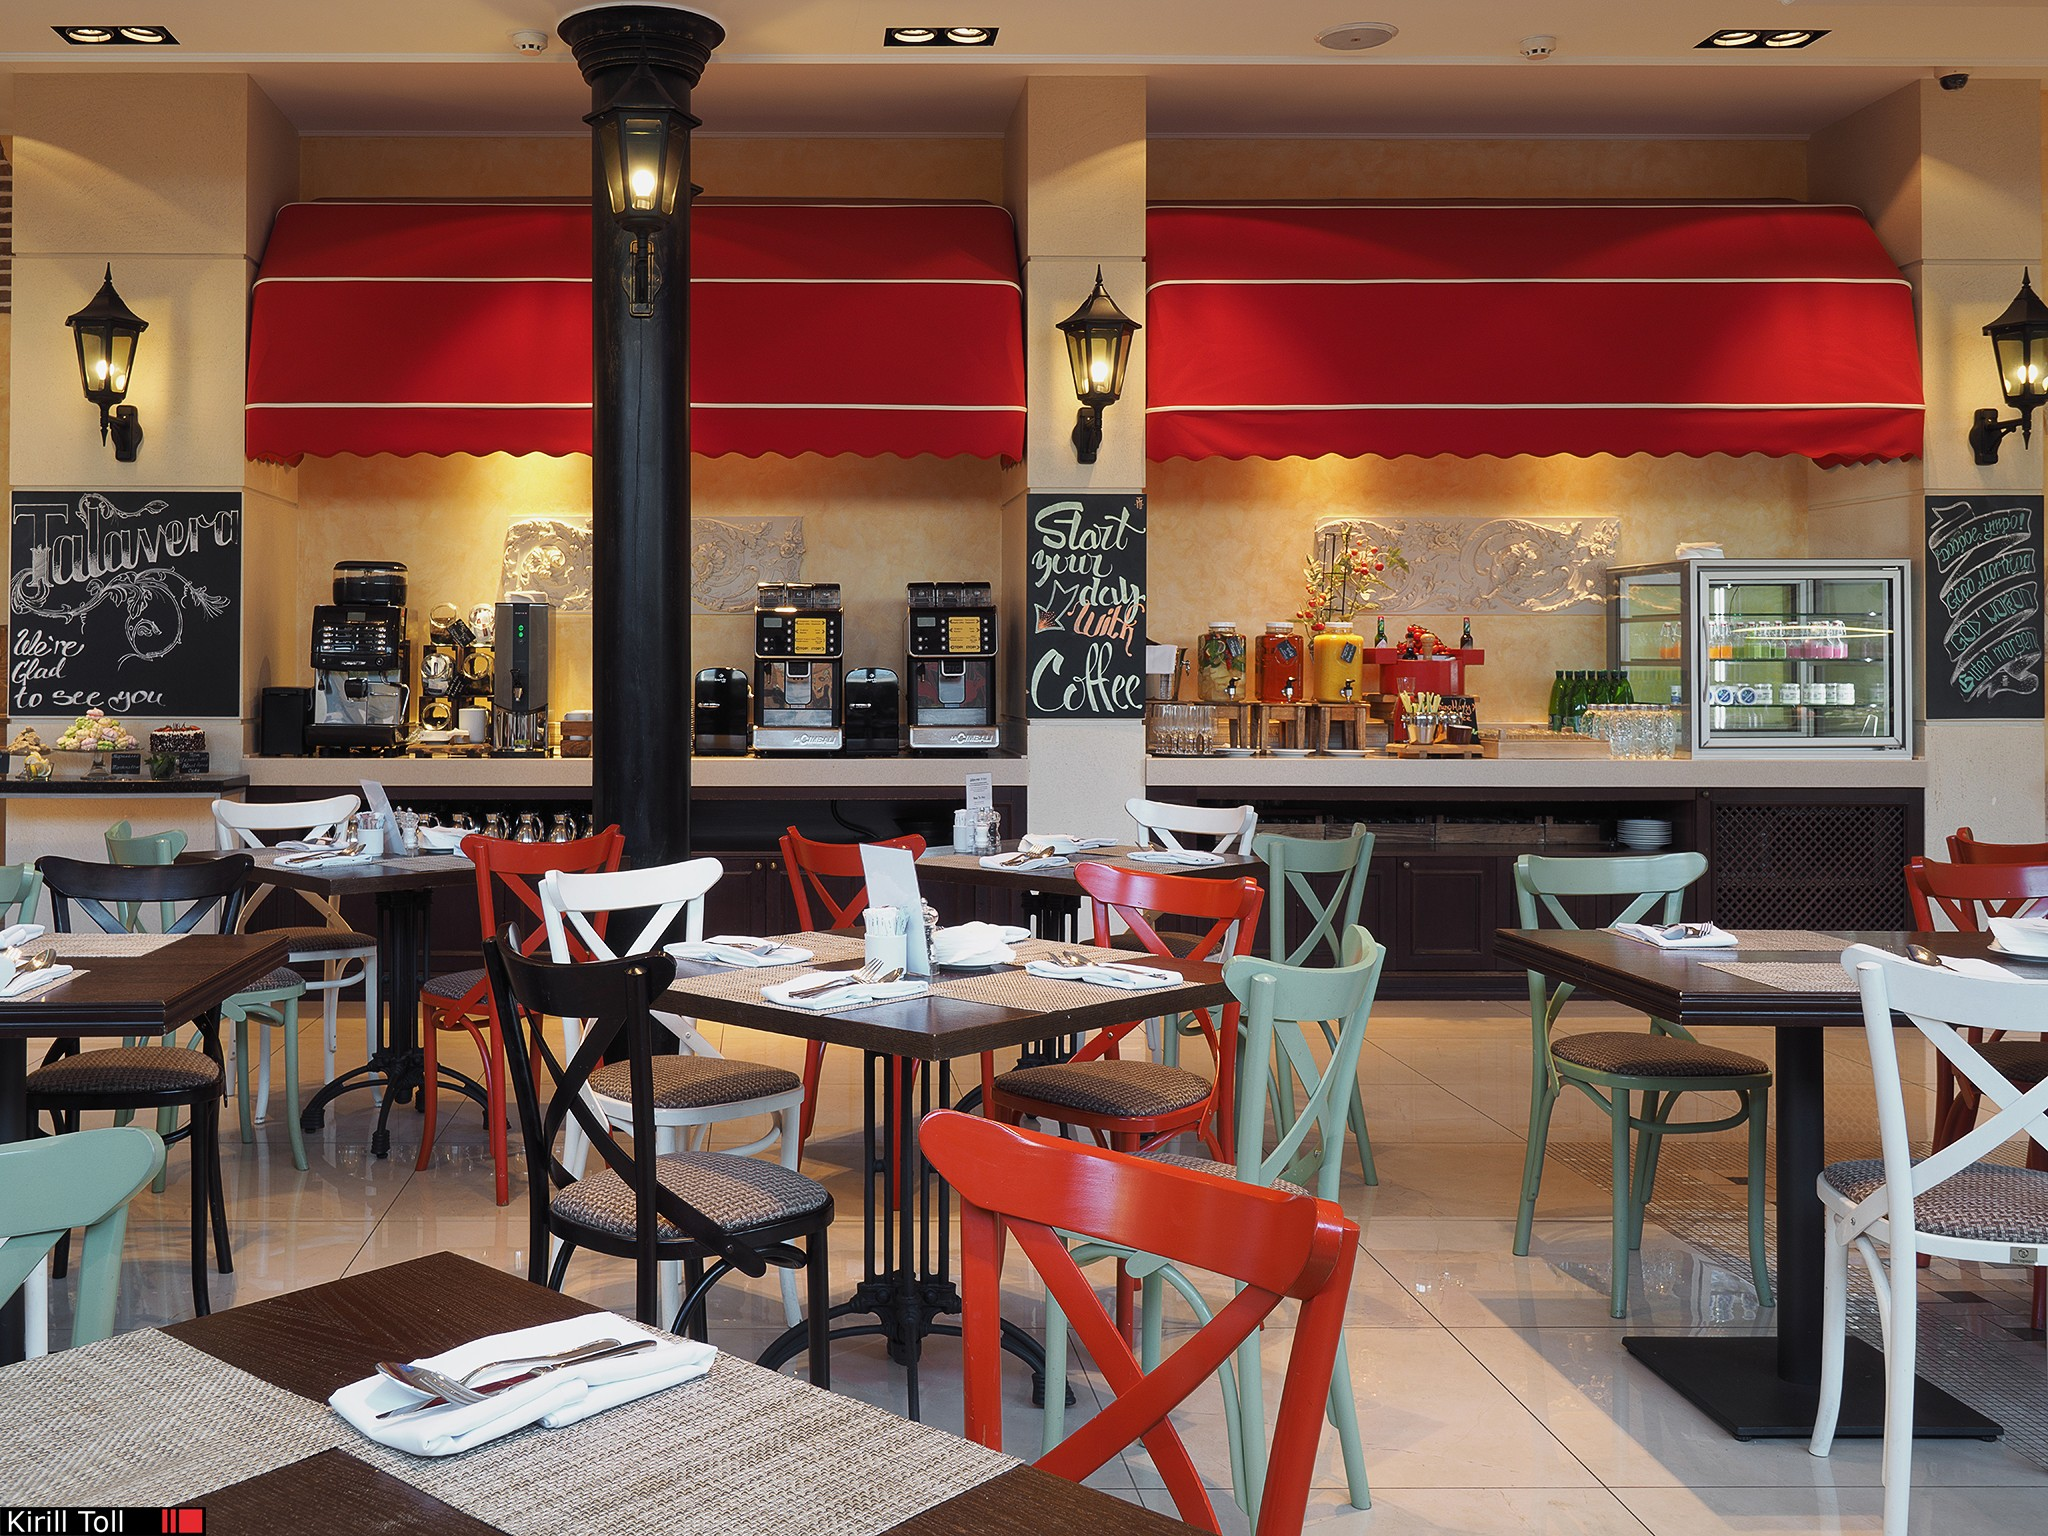 Restaurant interior with a shevd table. Professional photo for booklets